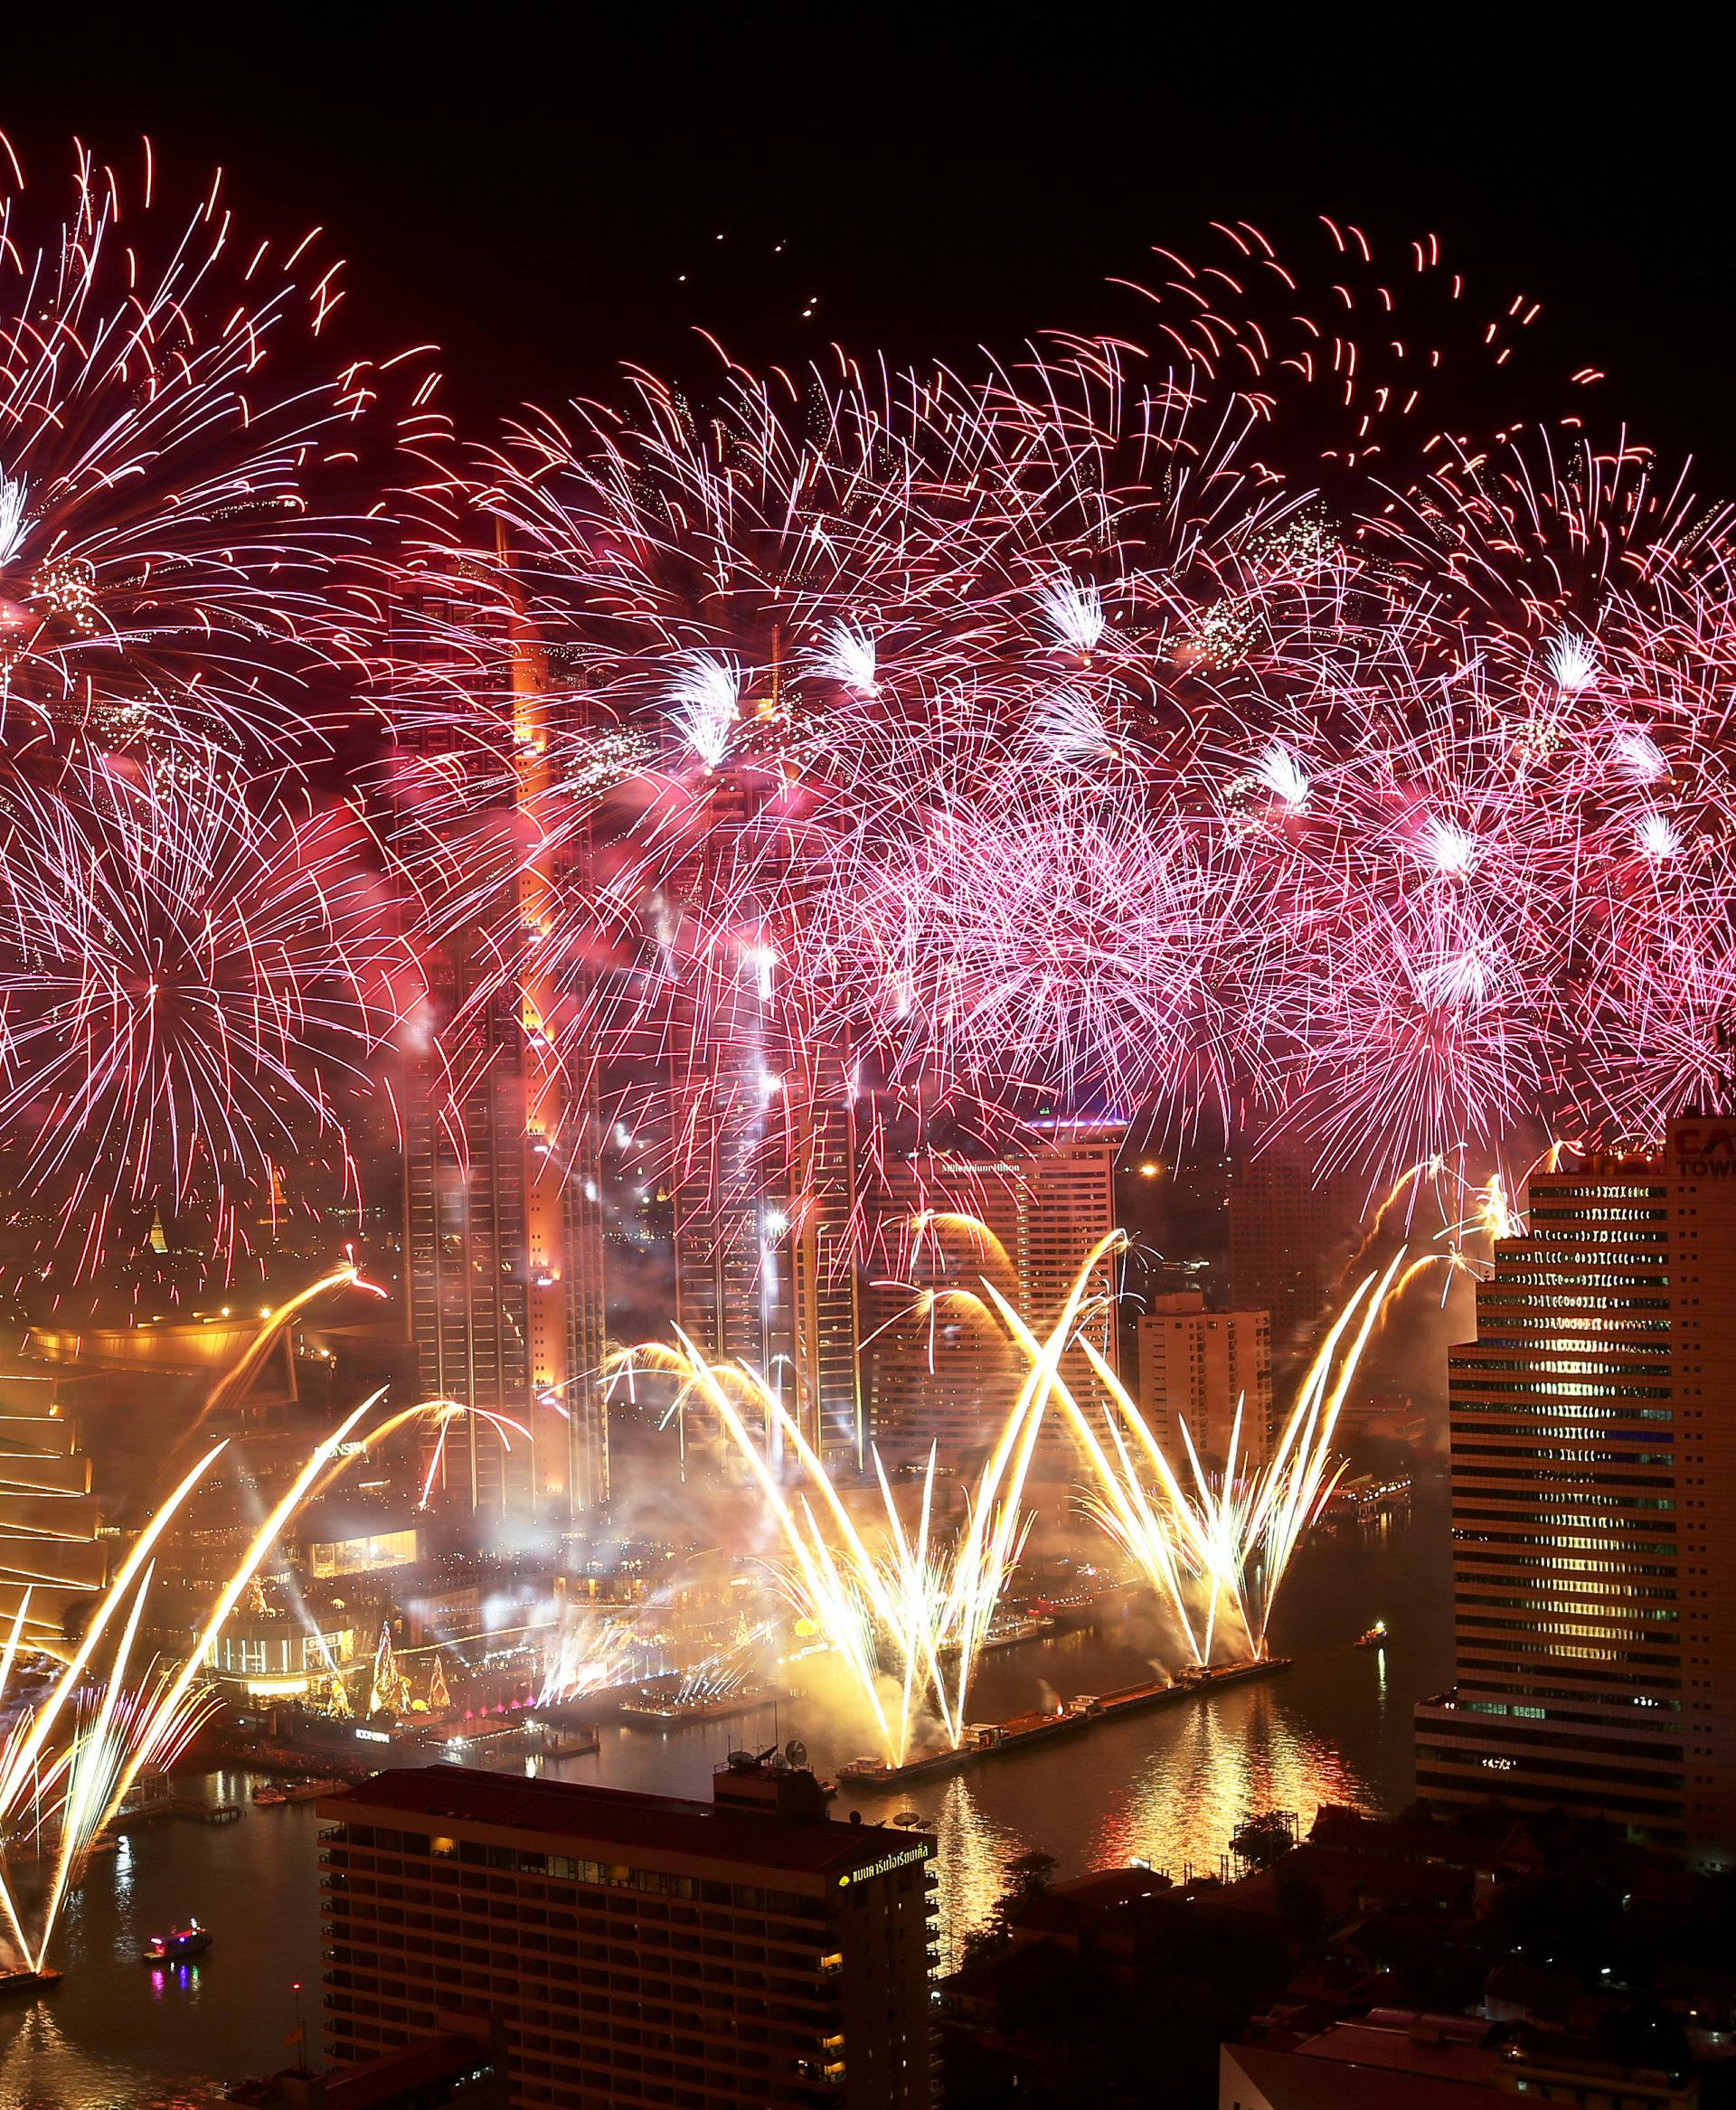 Fireworks explode over Chao Phraya River during the New Year celebrations in Bangkok